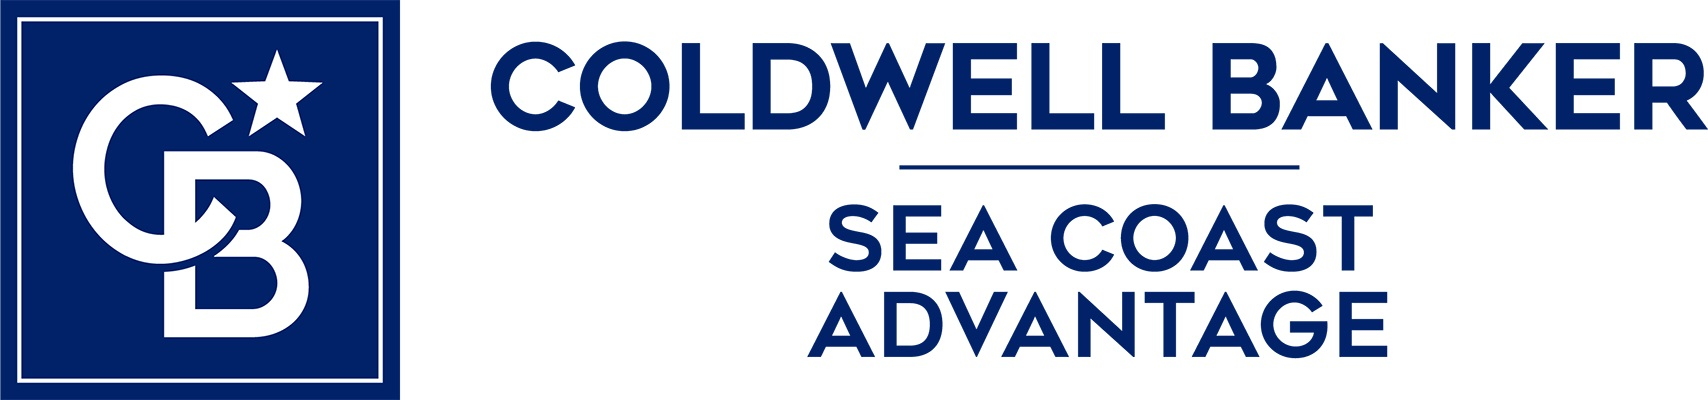 Glenda Newell - Coldwell Banker Sea Coast Advantage Realty